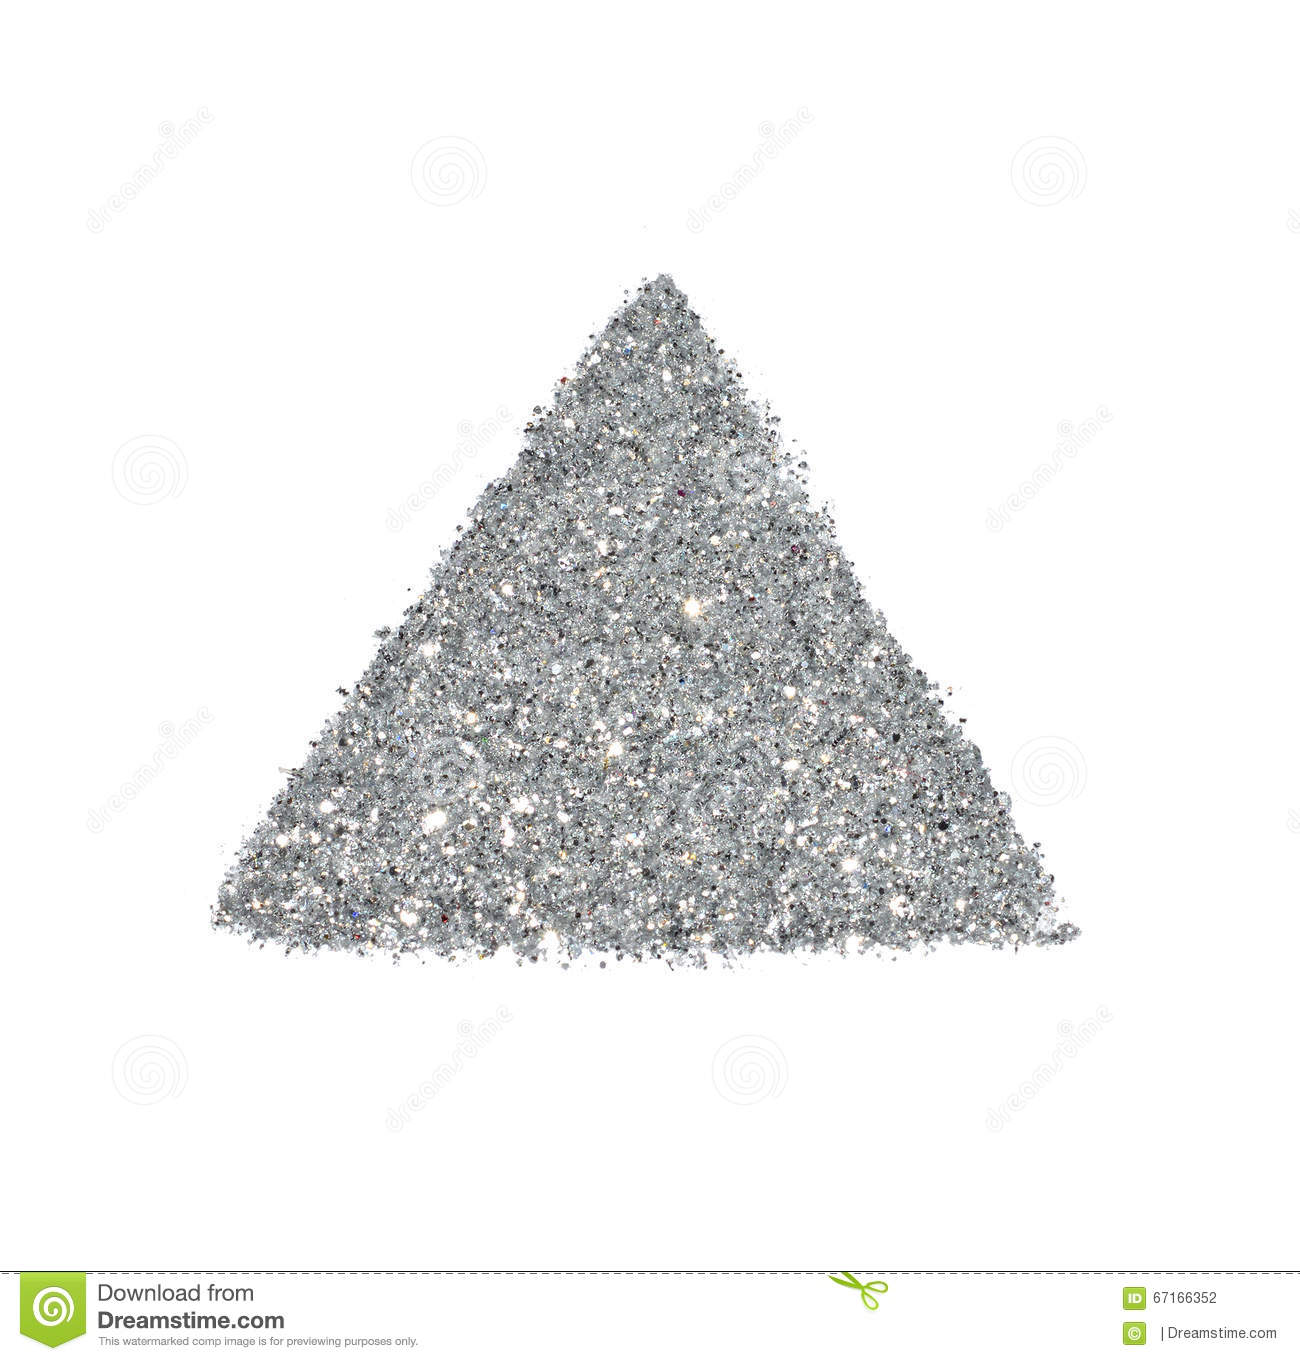 Abstract Triangle Or Pyramid Of Silver Glitter Sparkle On White ...